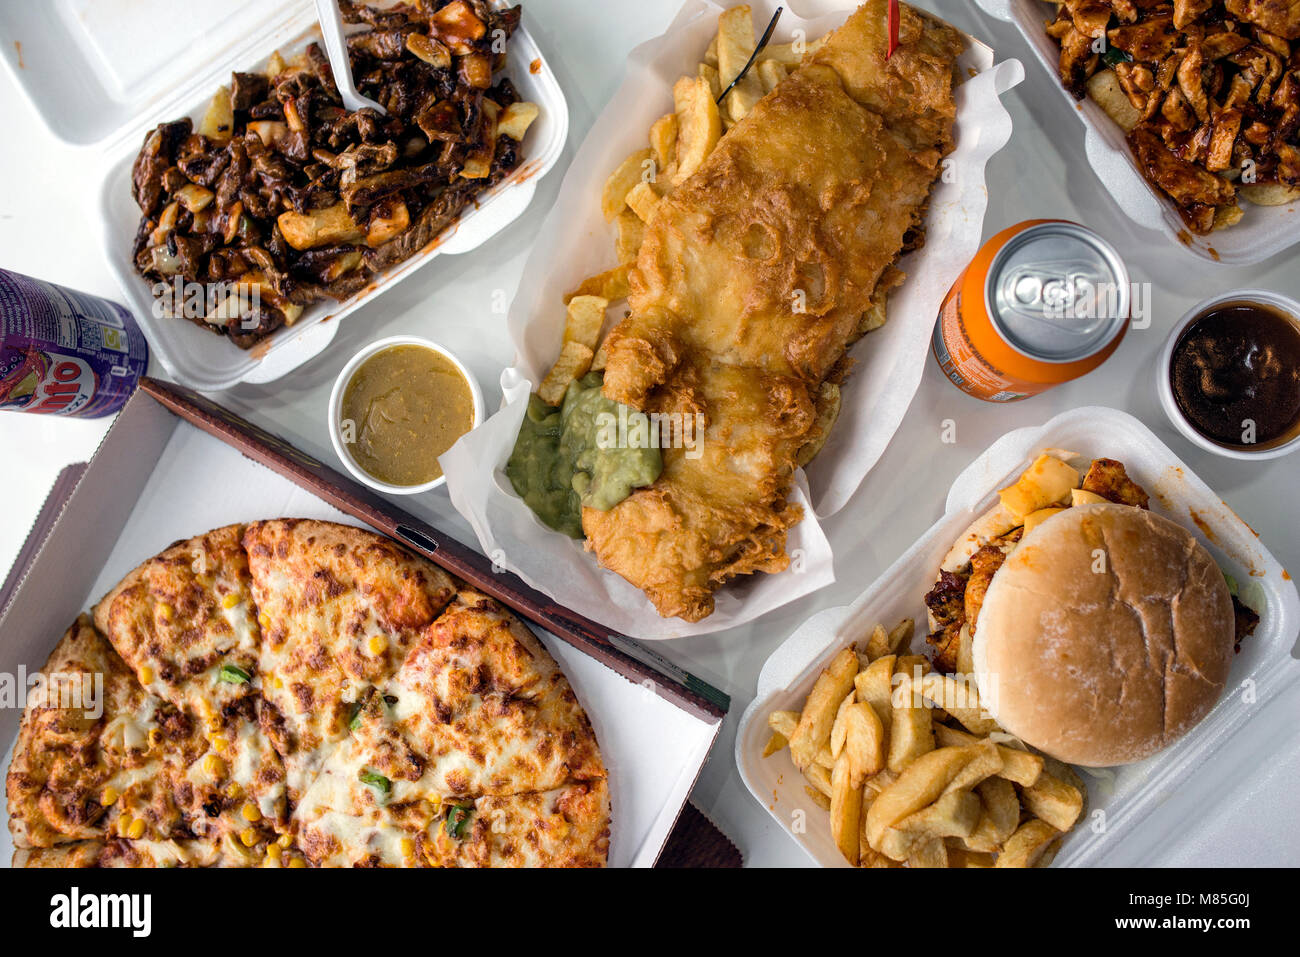 Fish and Chips, Junk Food From Above - Stock Image